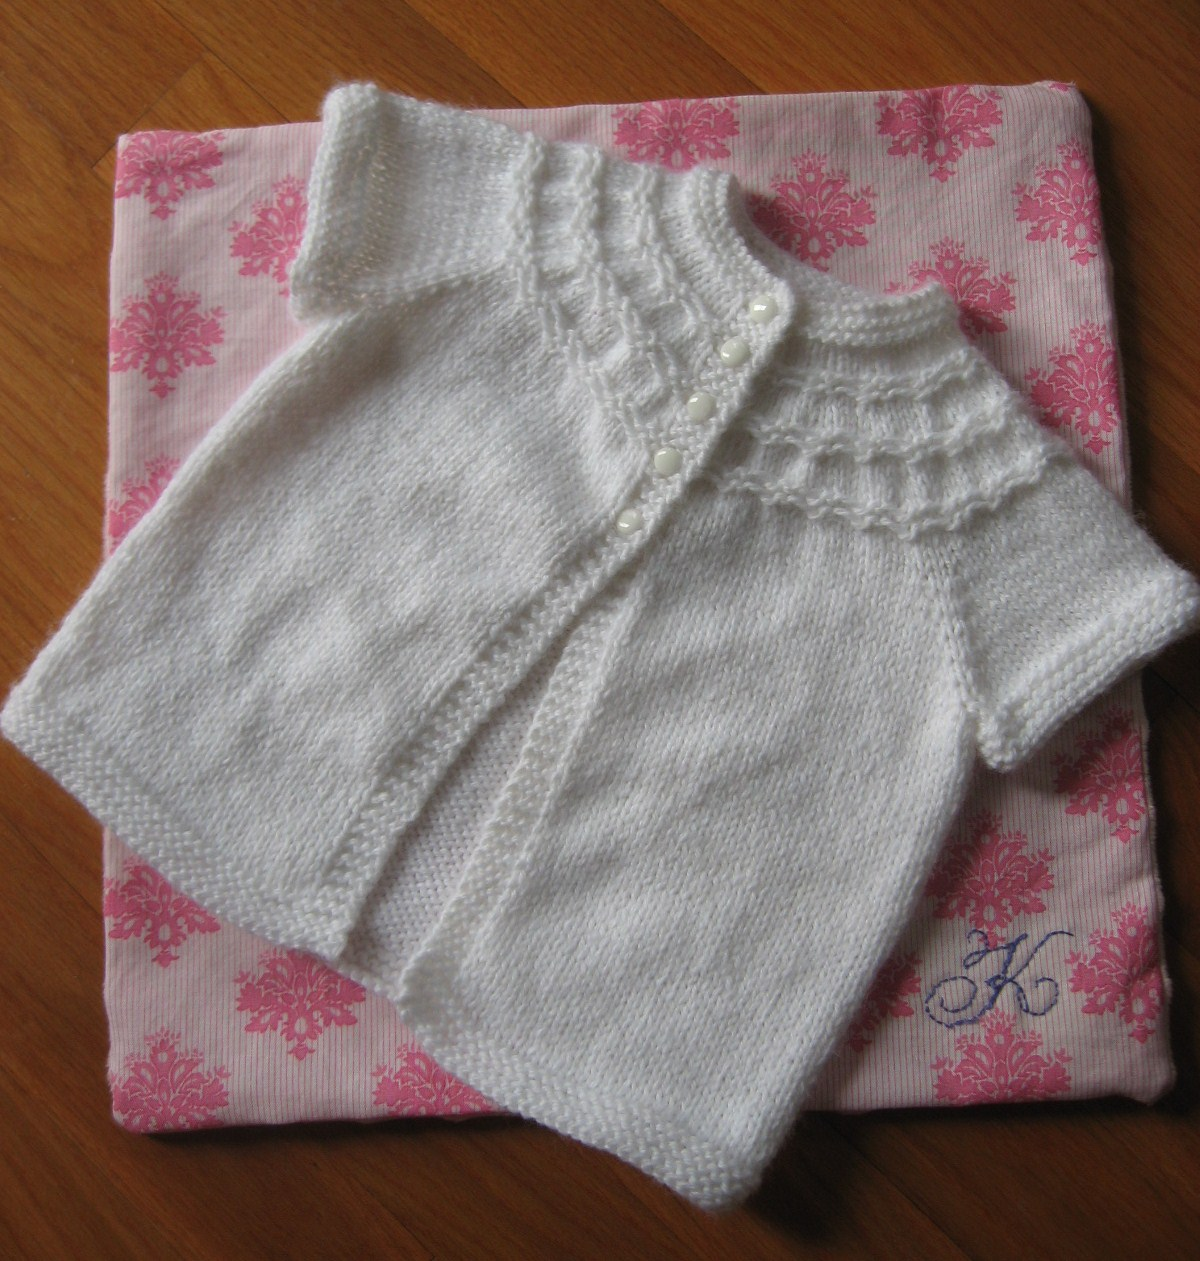 Labor of Love: Baby Gifts